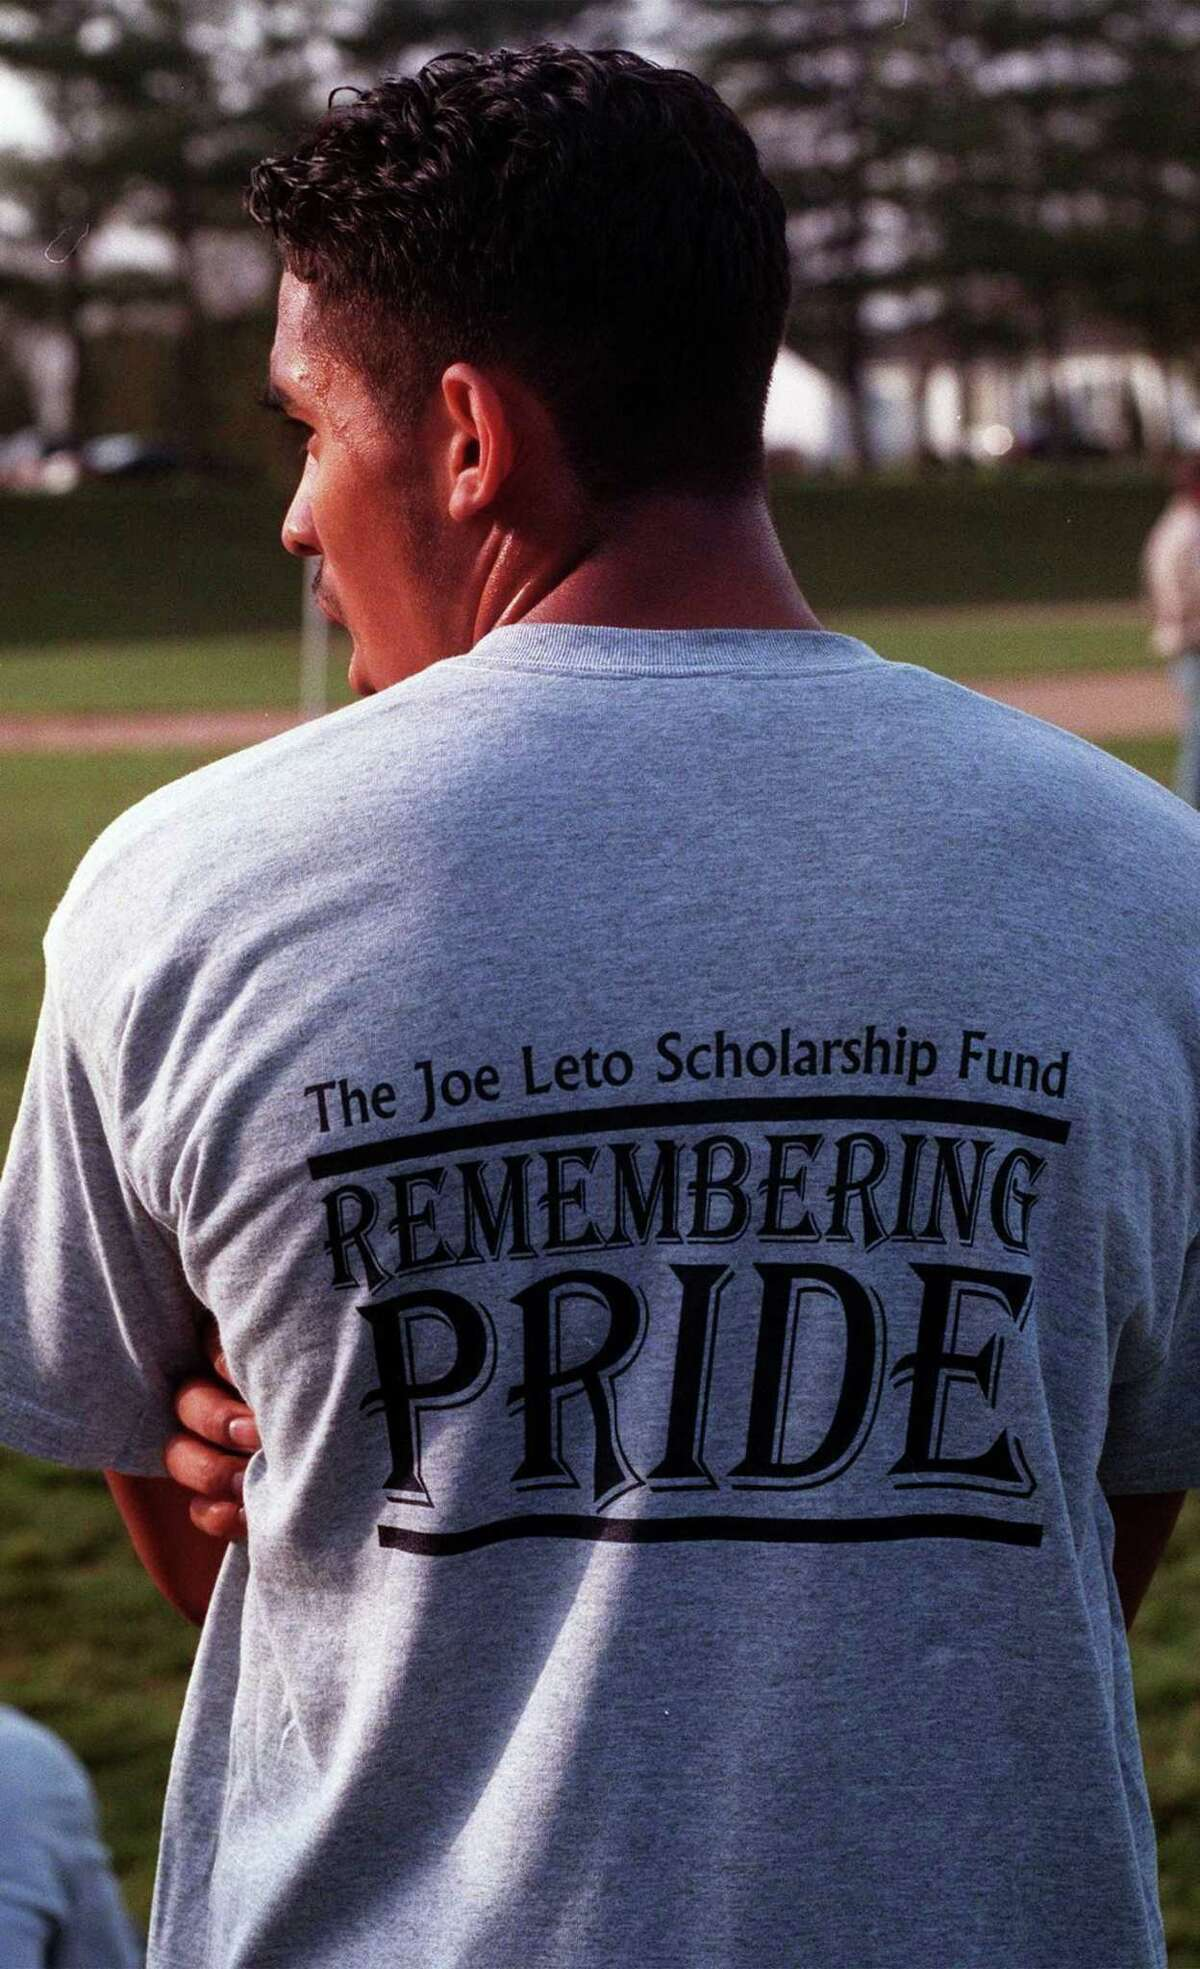 This year will mark the 21st and final Run for Joe event to raise funds for the Giuseppe Leto Scholarship Fund at Canterbury School in New Milford. The first run/walk was held Dec. 5, 1999, and the first-place finisher was Anderson Navarette, above.